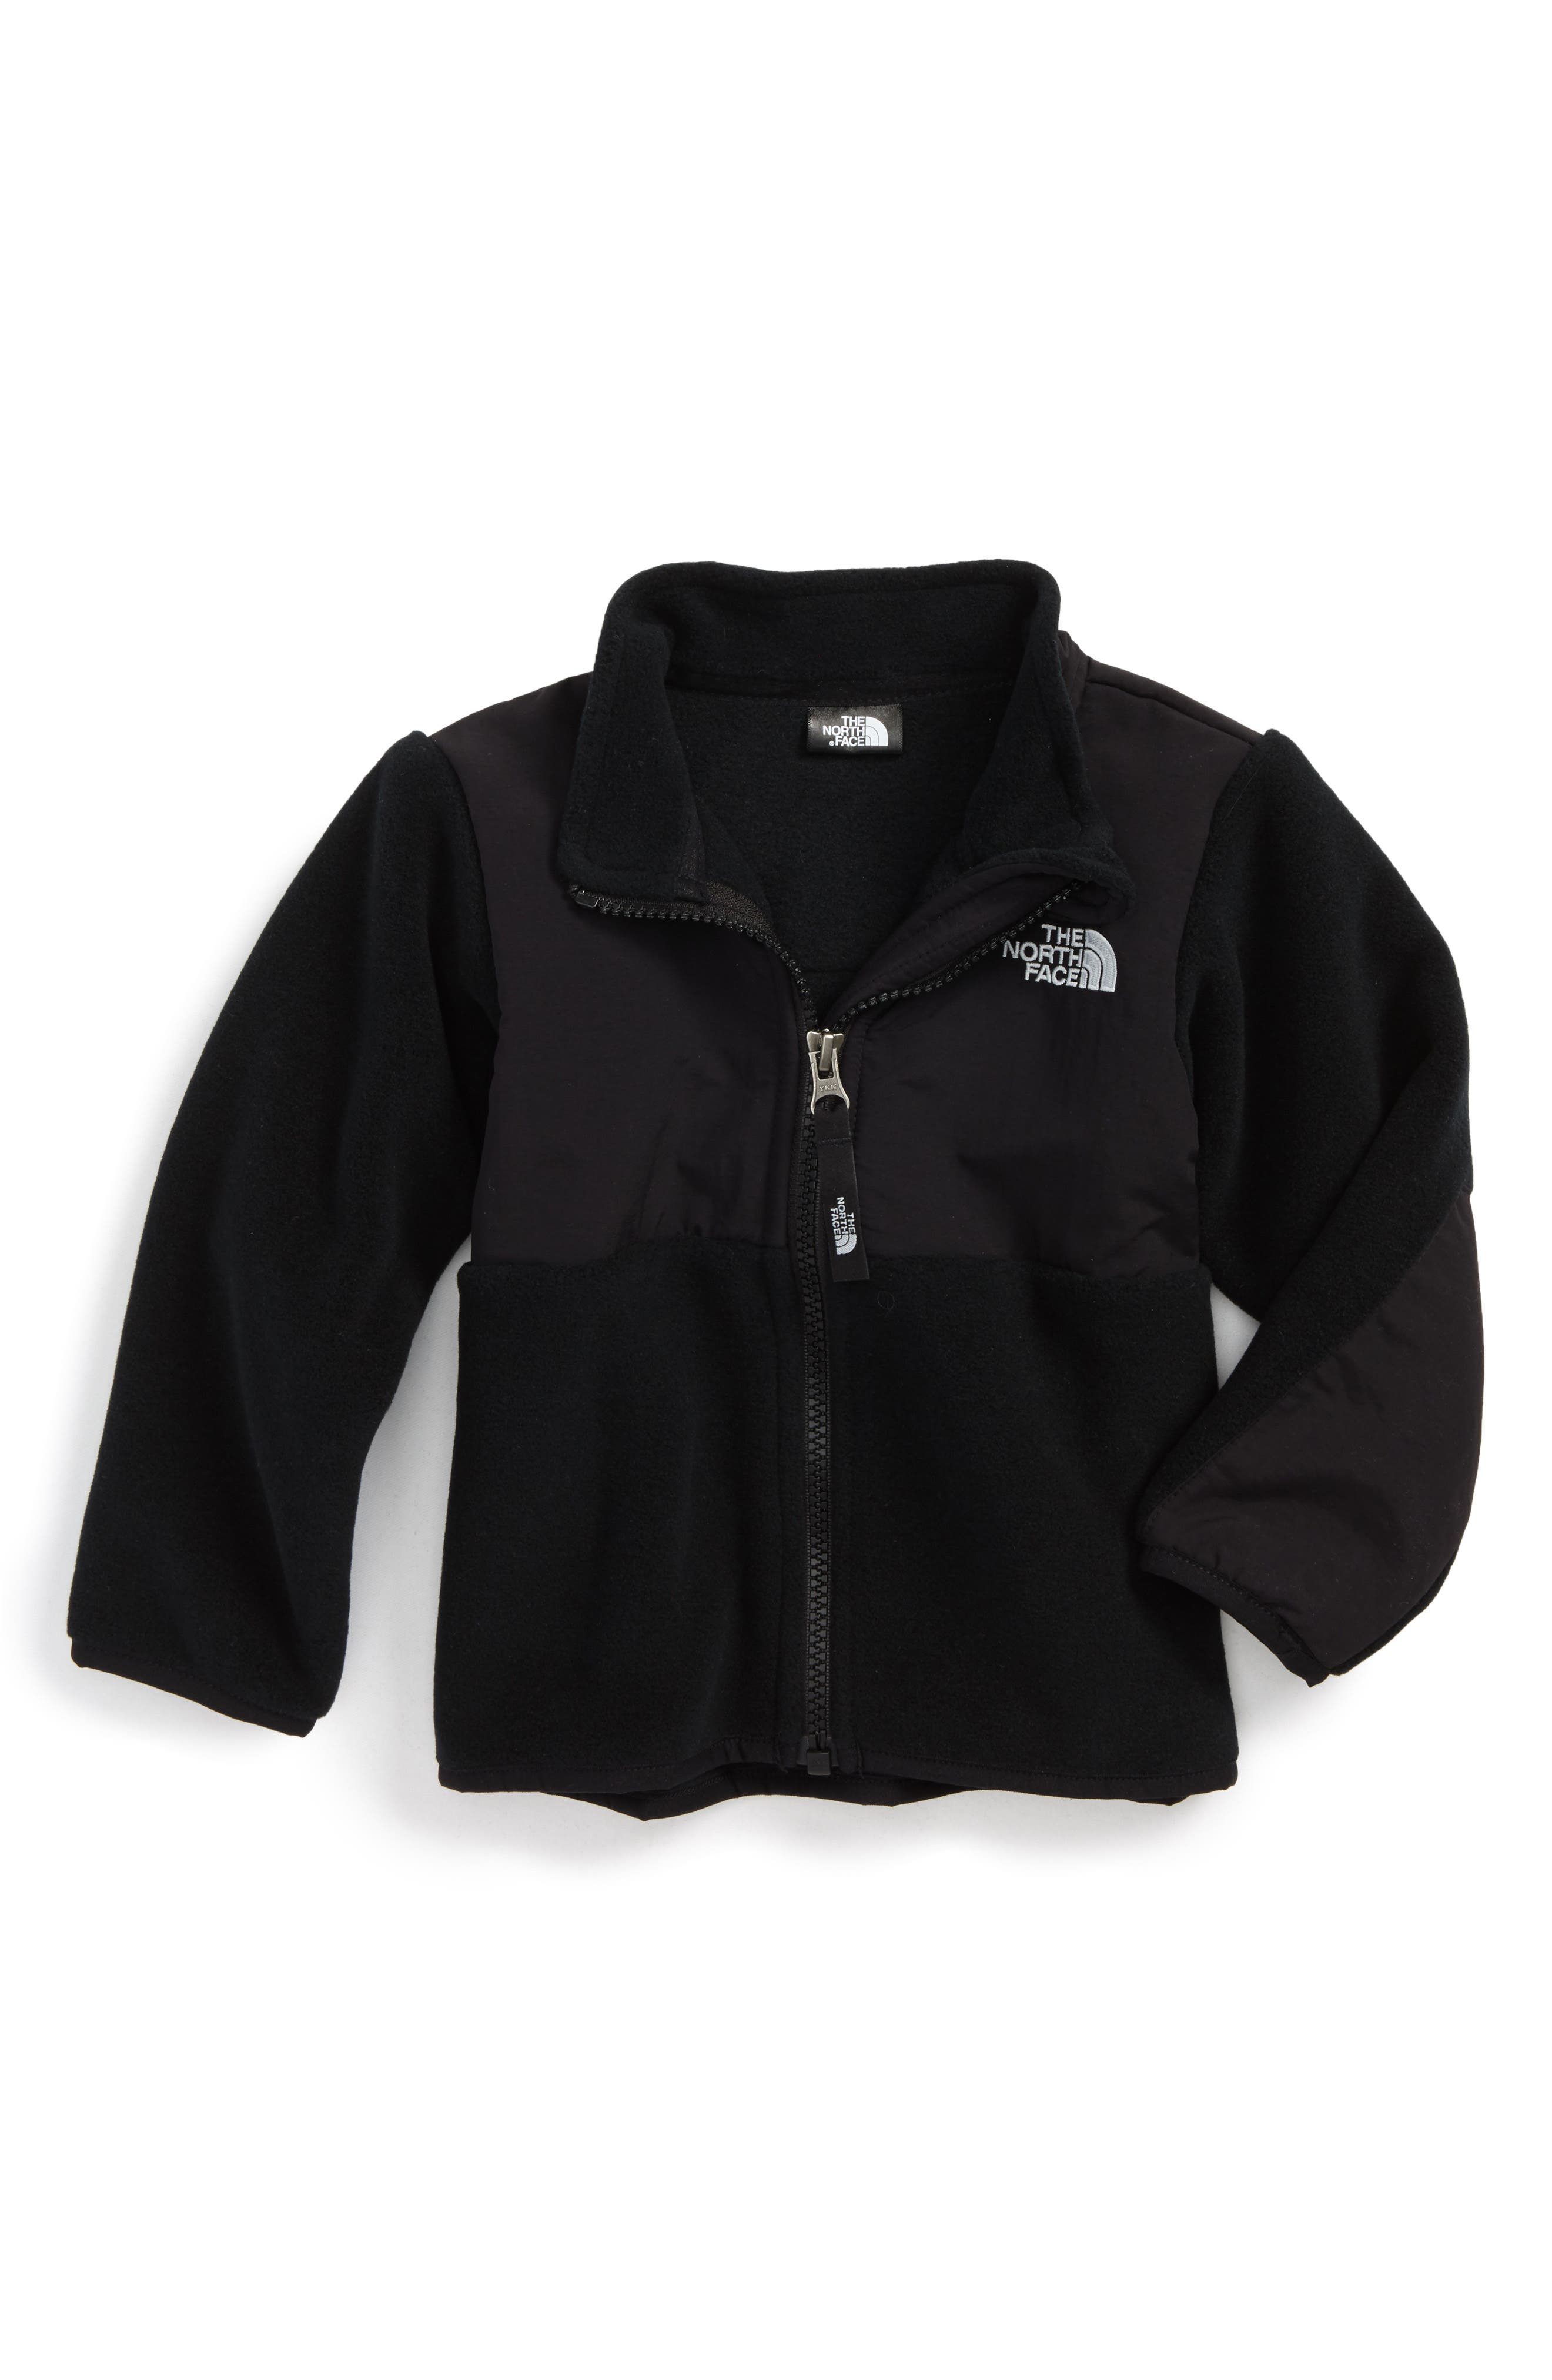 Alternate Image 1 Selected - The North Face Denali Recycled Fleece Jacket (Baby Boys)